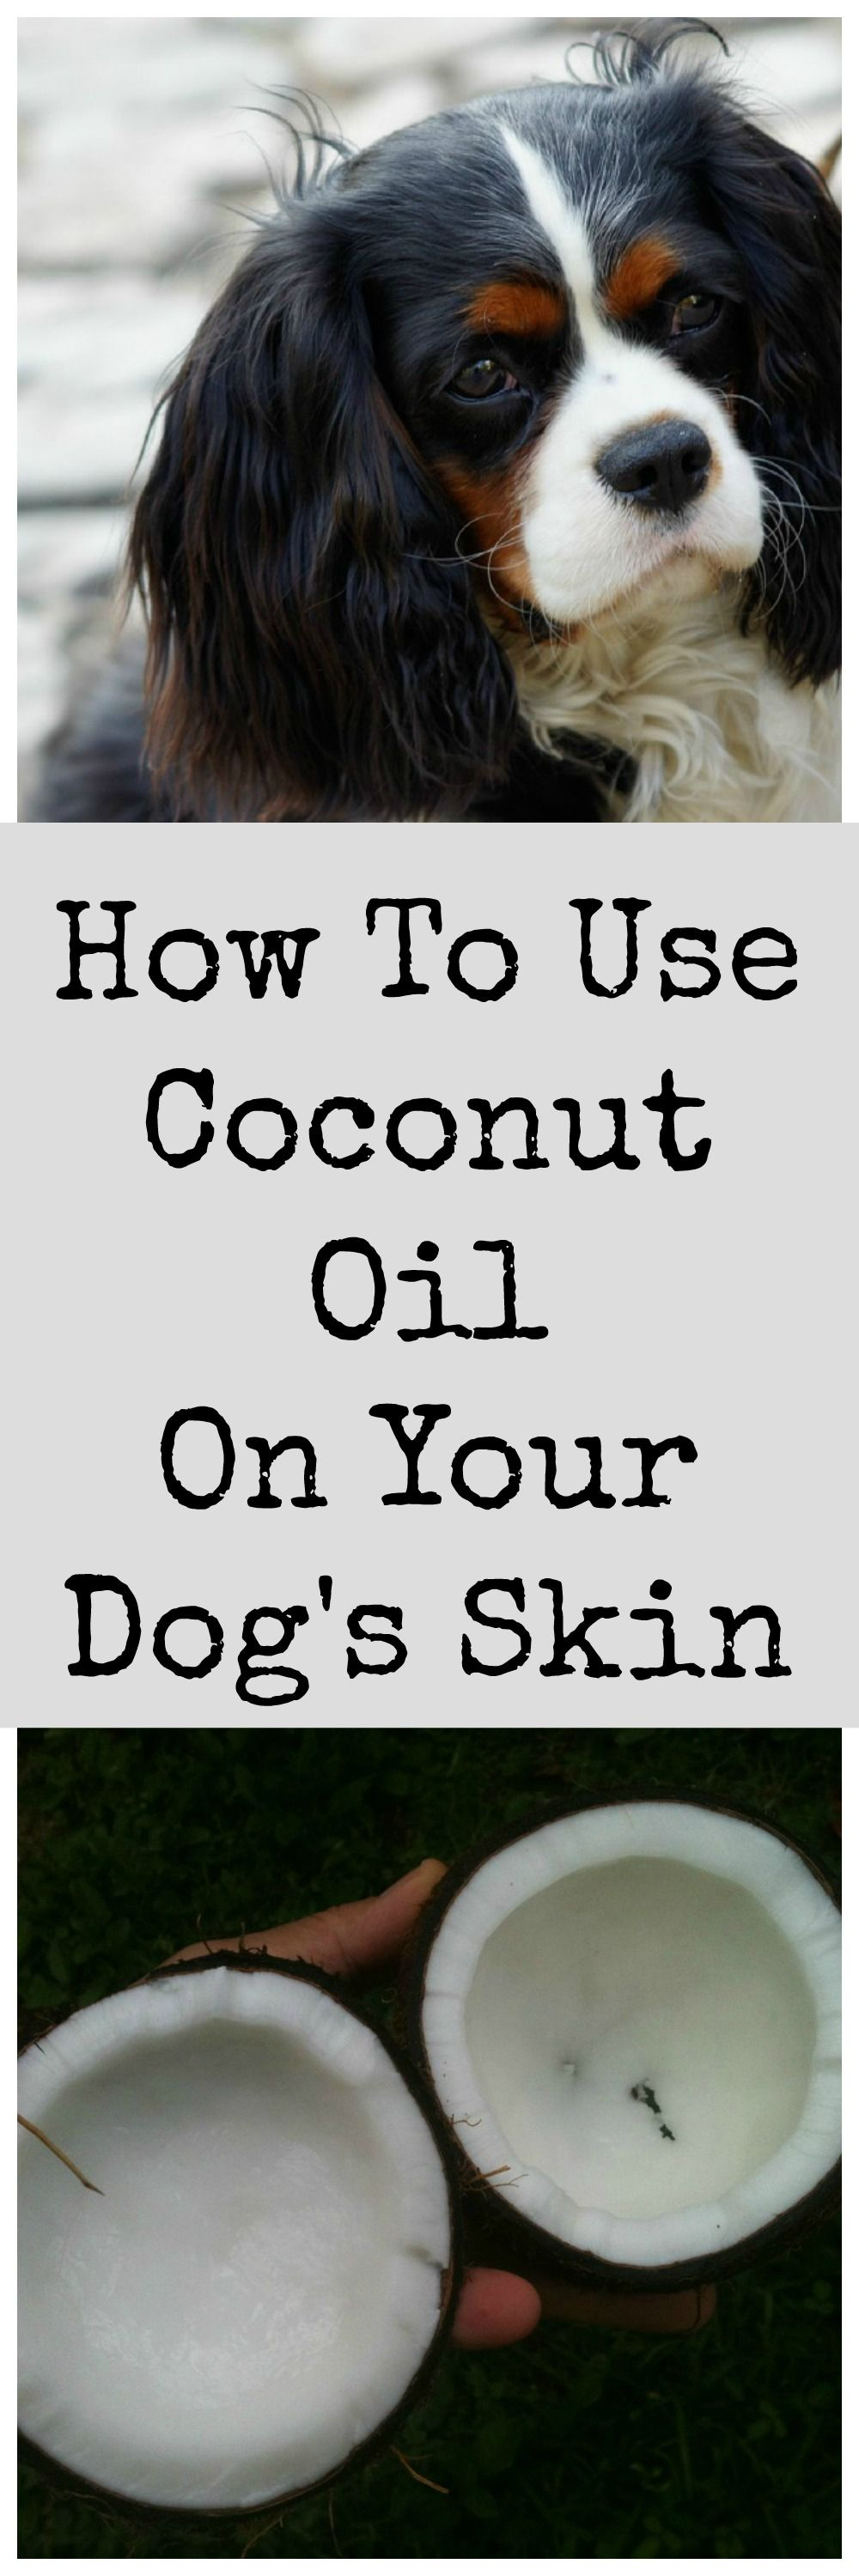 Coconut Oil For Dogs With Dry Skin Coconut oil for dogs